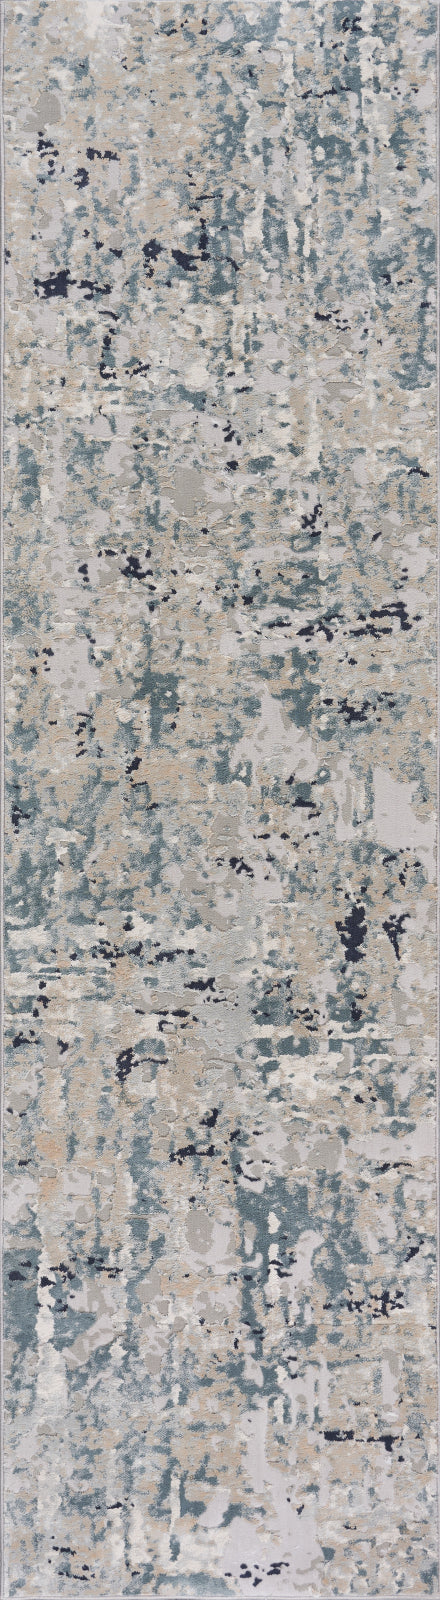 LR Resources Imagine Harbor Mist Blue Area Rug main image